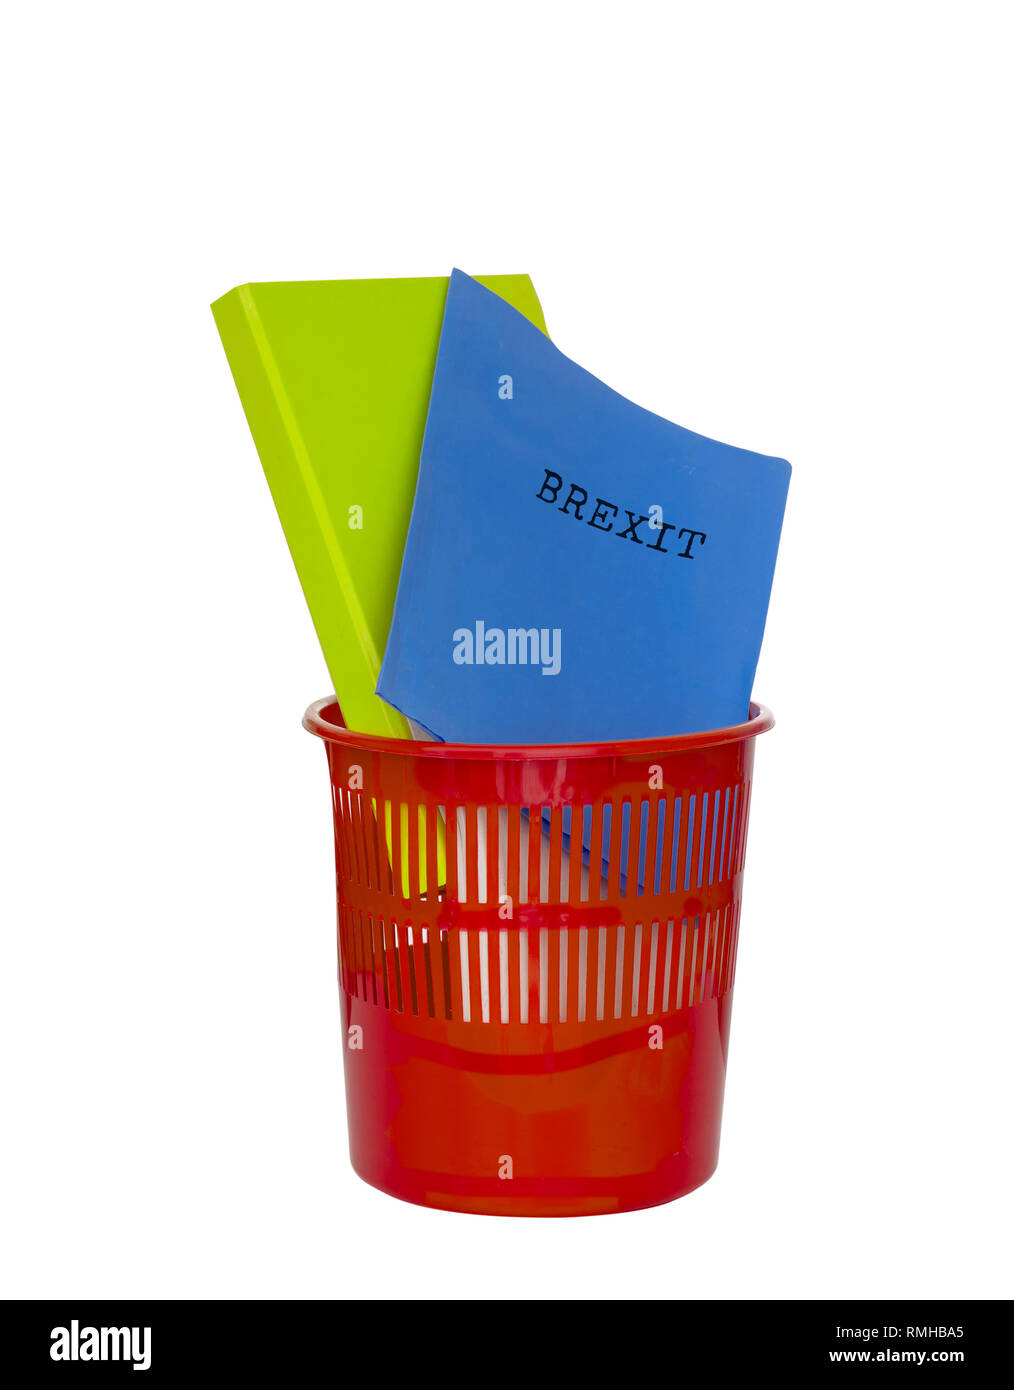 Brexit documents and files in bin. UK EU politics metaphor or concept. Delay or avoid leaving EU. - Stock Image